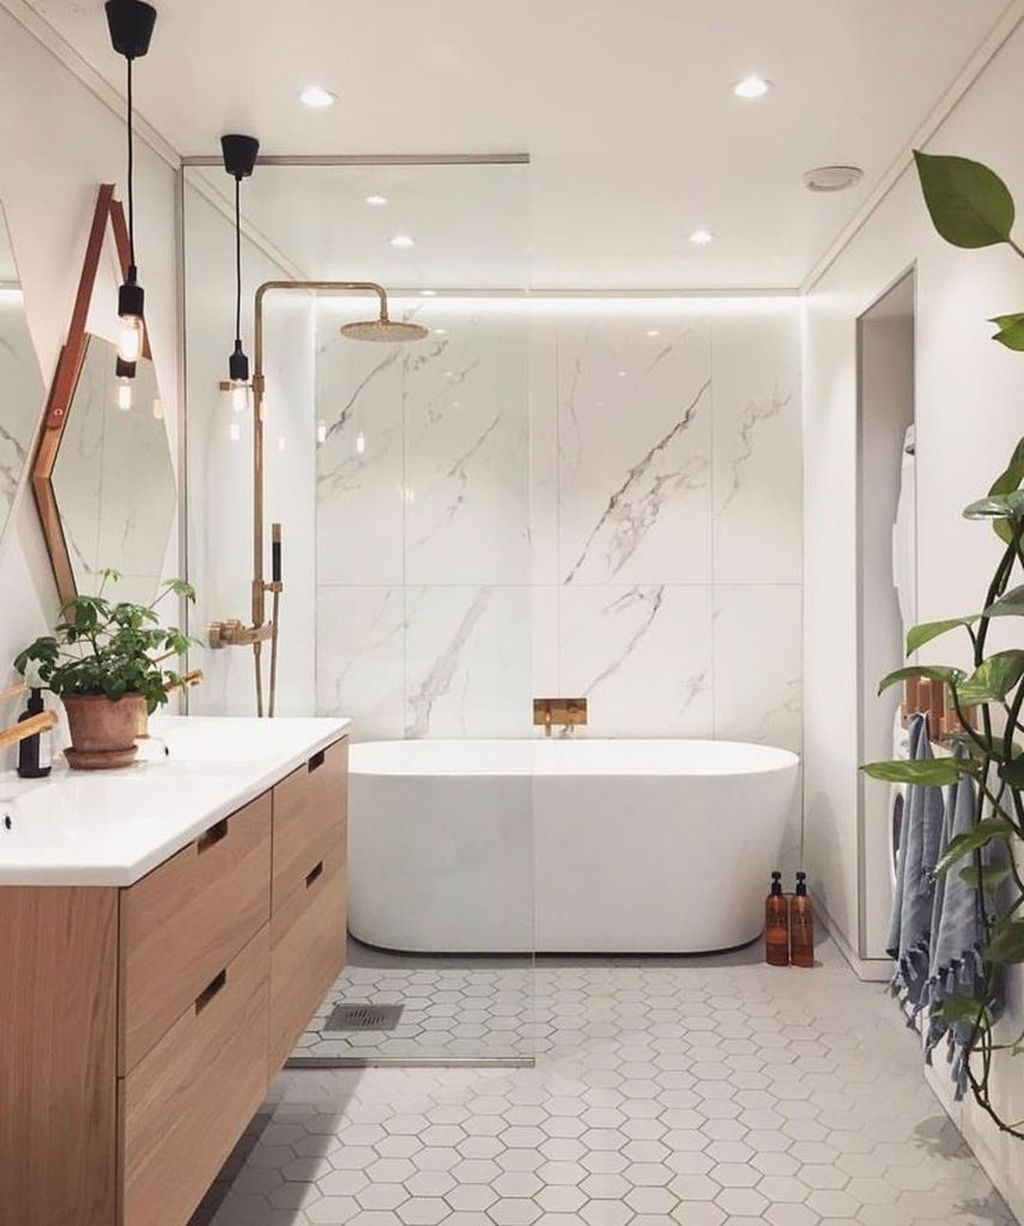 All Details You Need to Know About Home Decoration - Modern